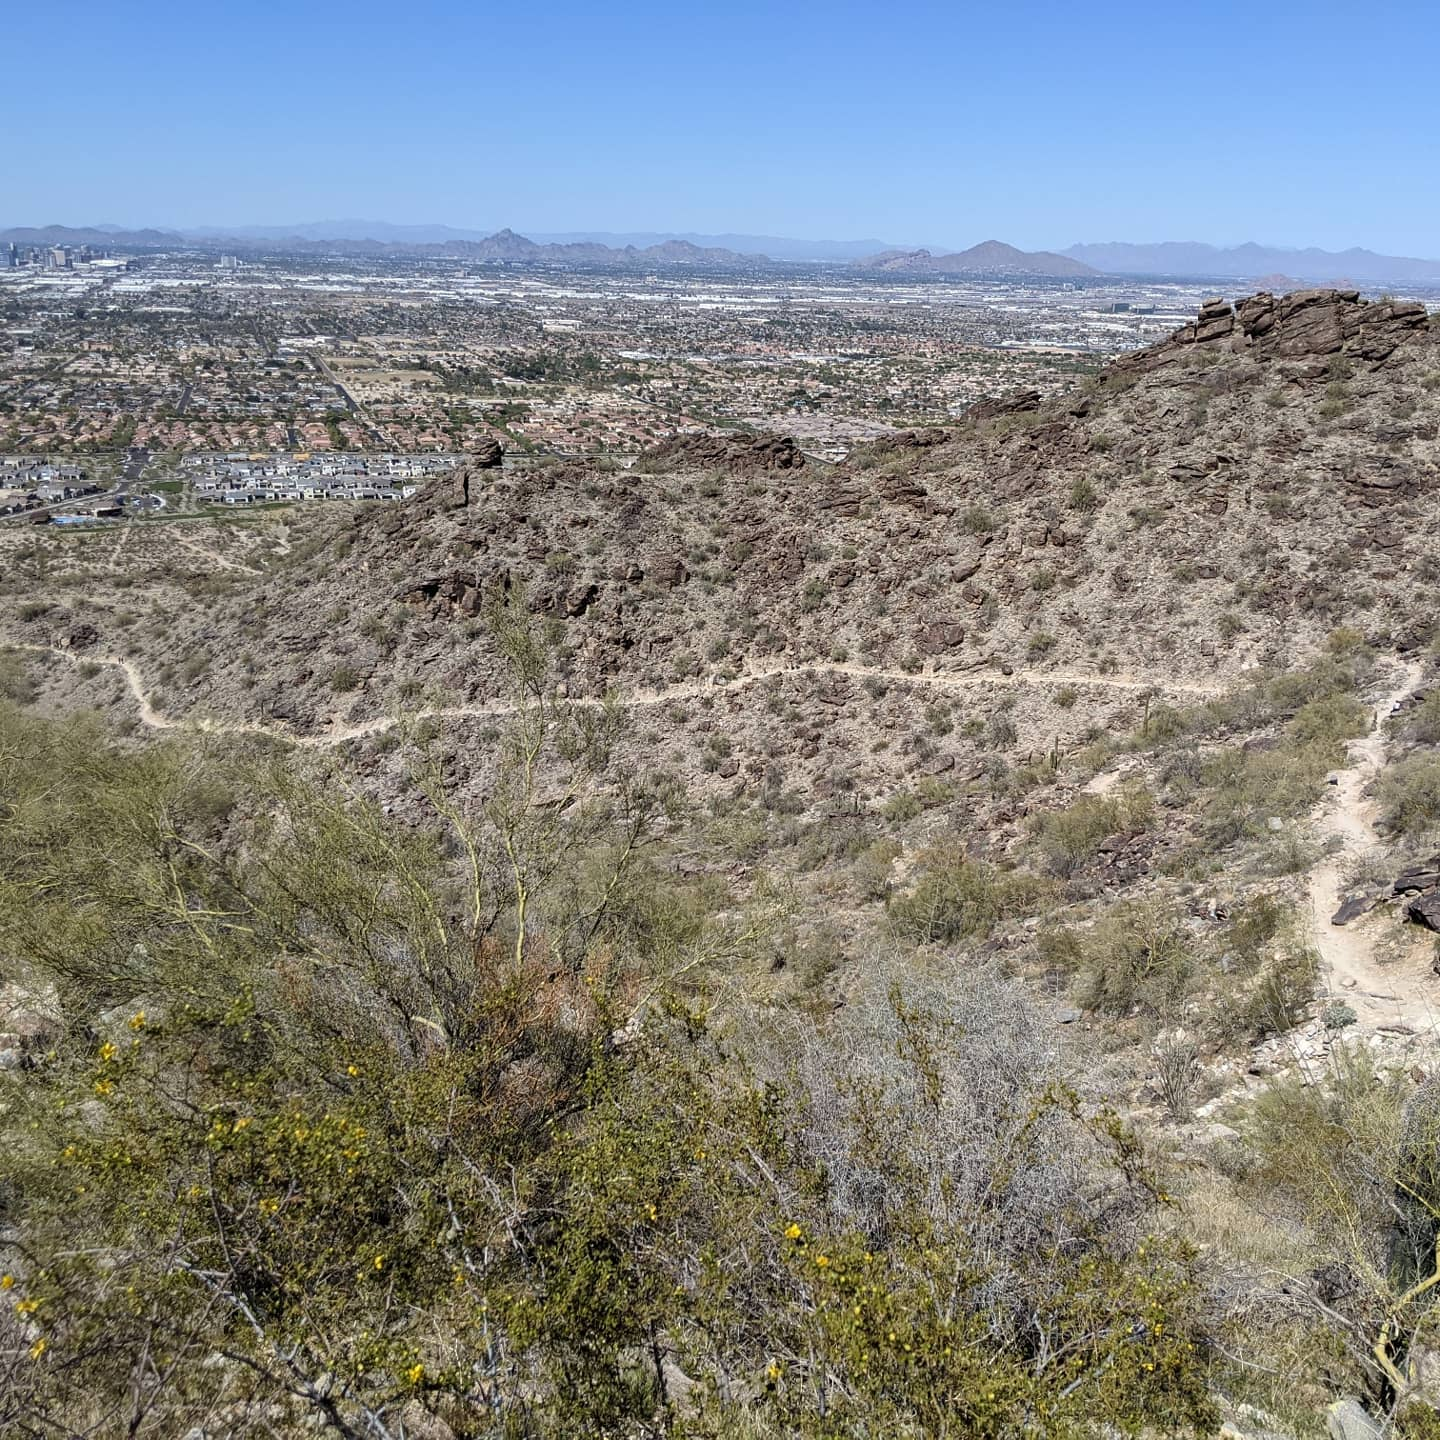 A few random shots from my hike yesterday that I thought people might appreciate. #phoenix